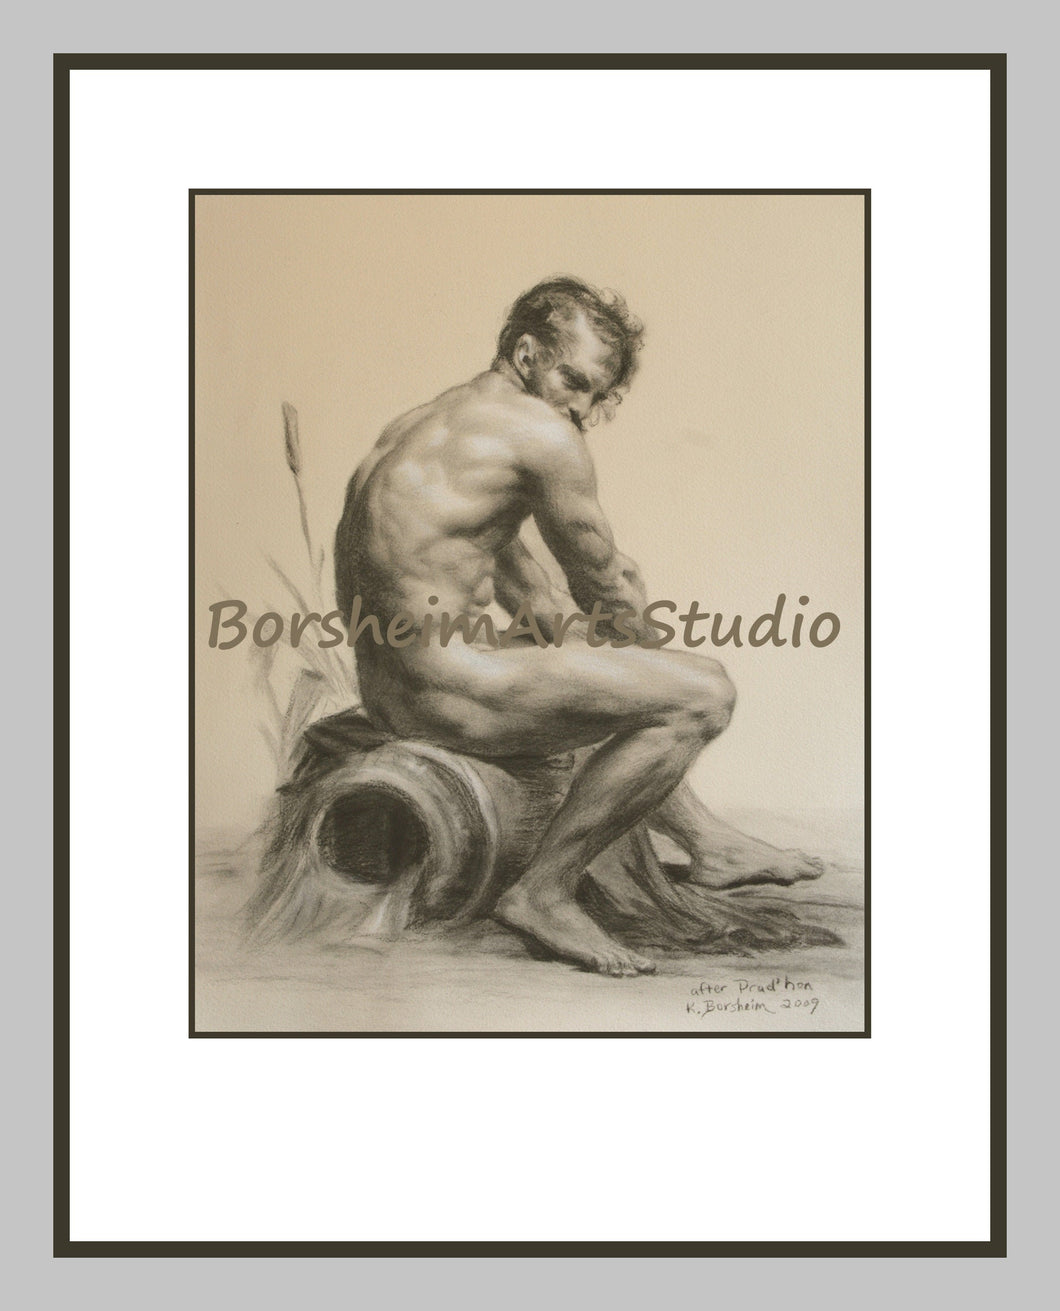 Prudhon Rhine River Allegory Muscular Male Nude Figure Digital Download of Charcoal Drawing Printable Art After Prudhon 1 SEPIA